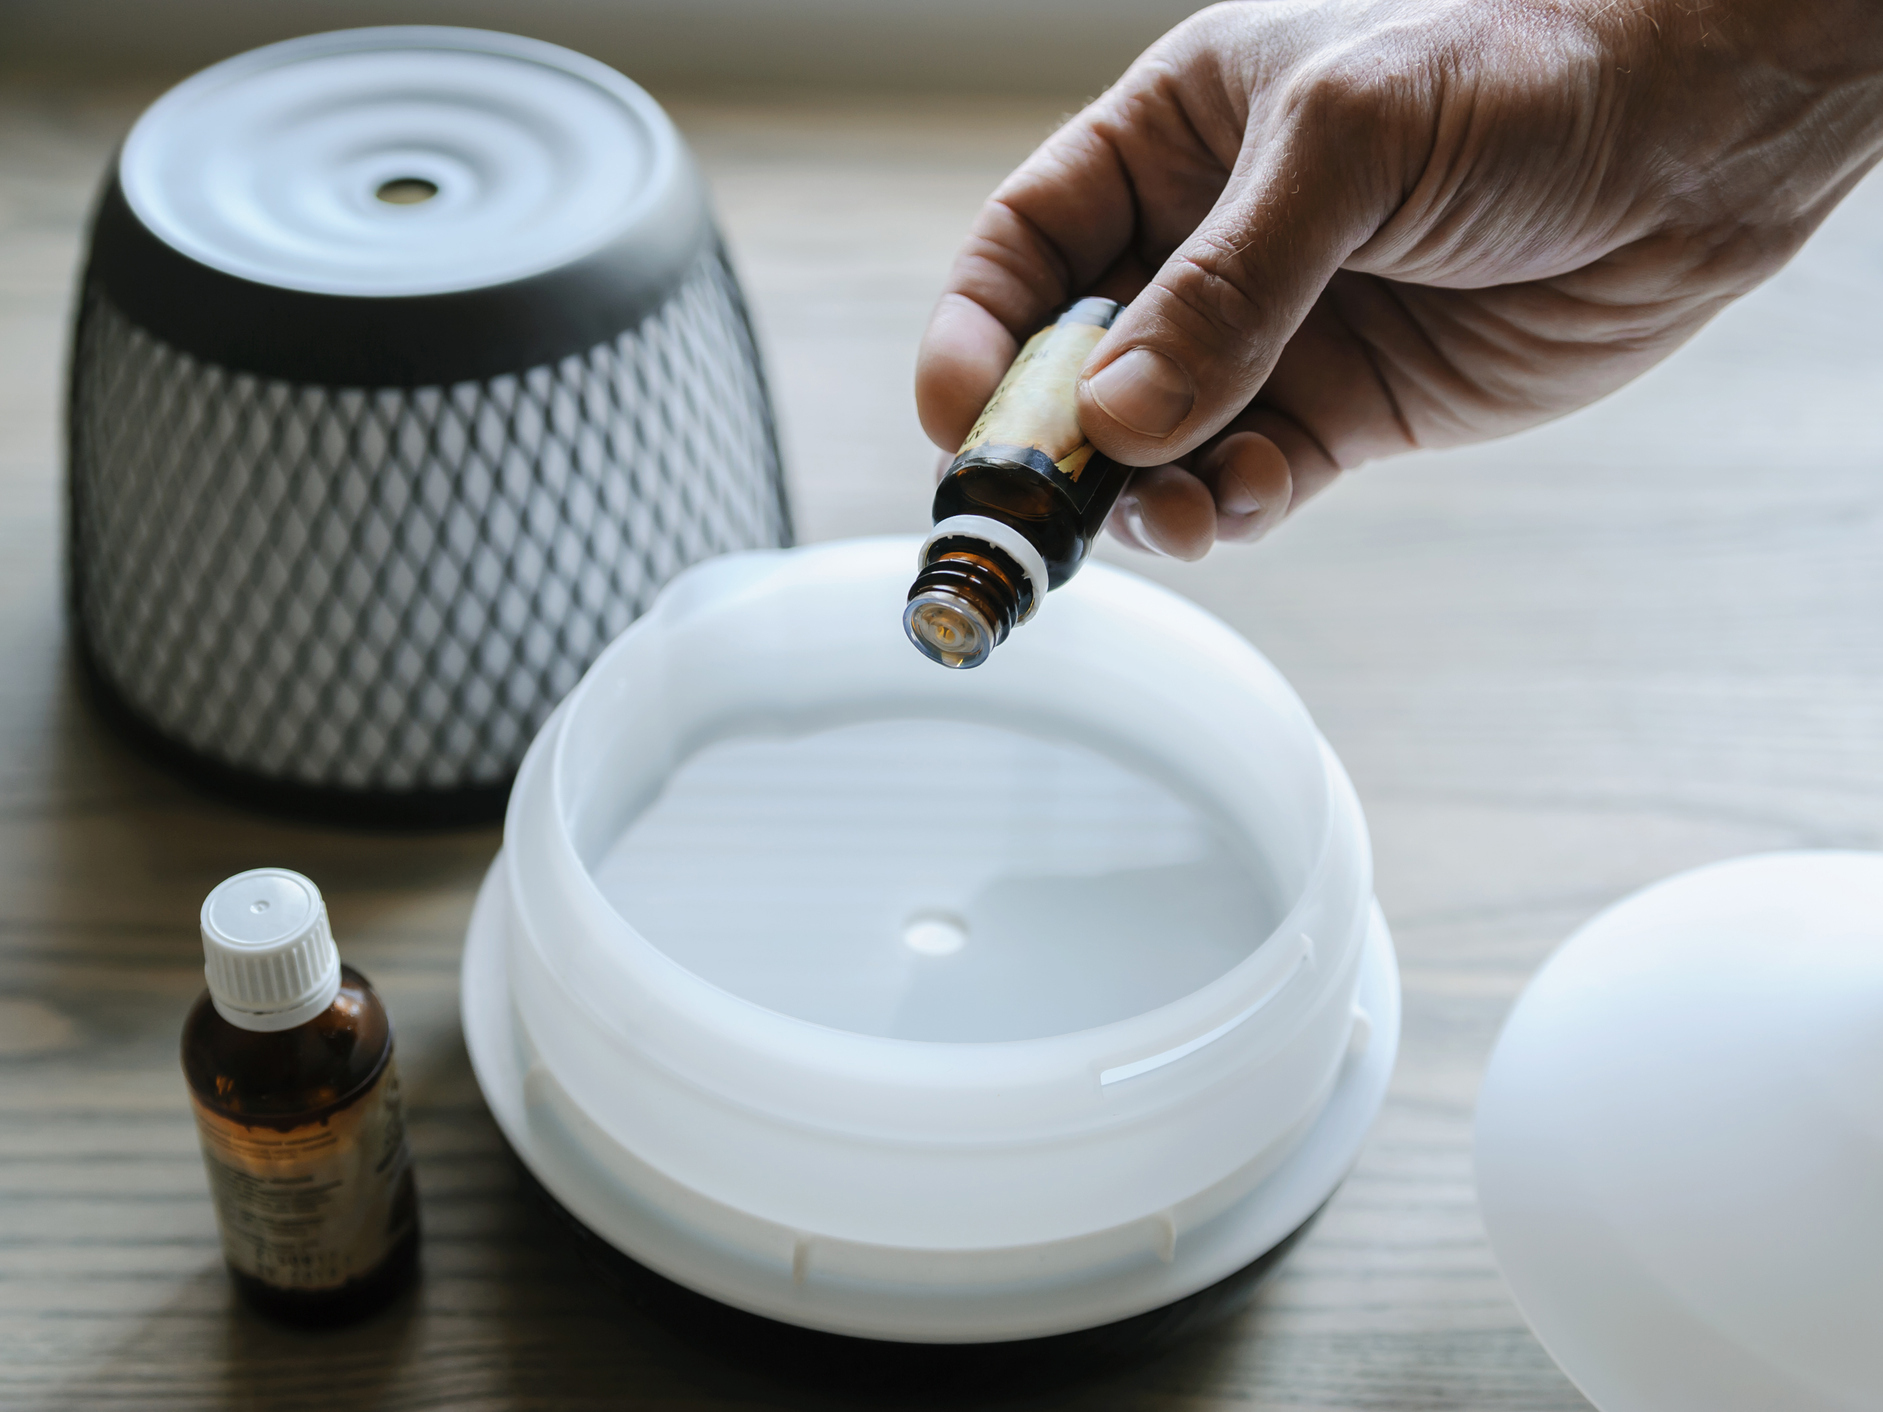 Adding essential oils to a diffuser